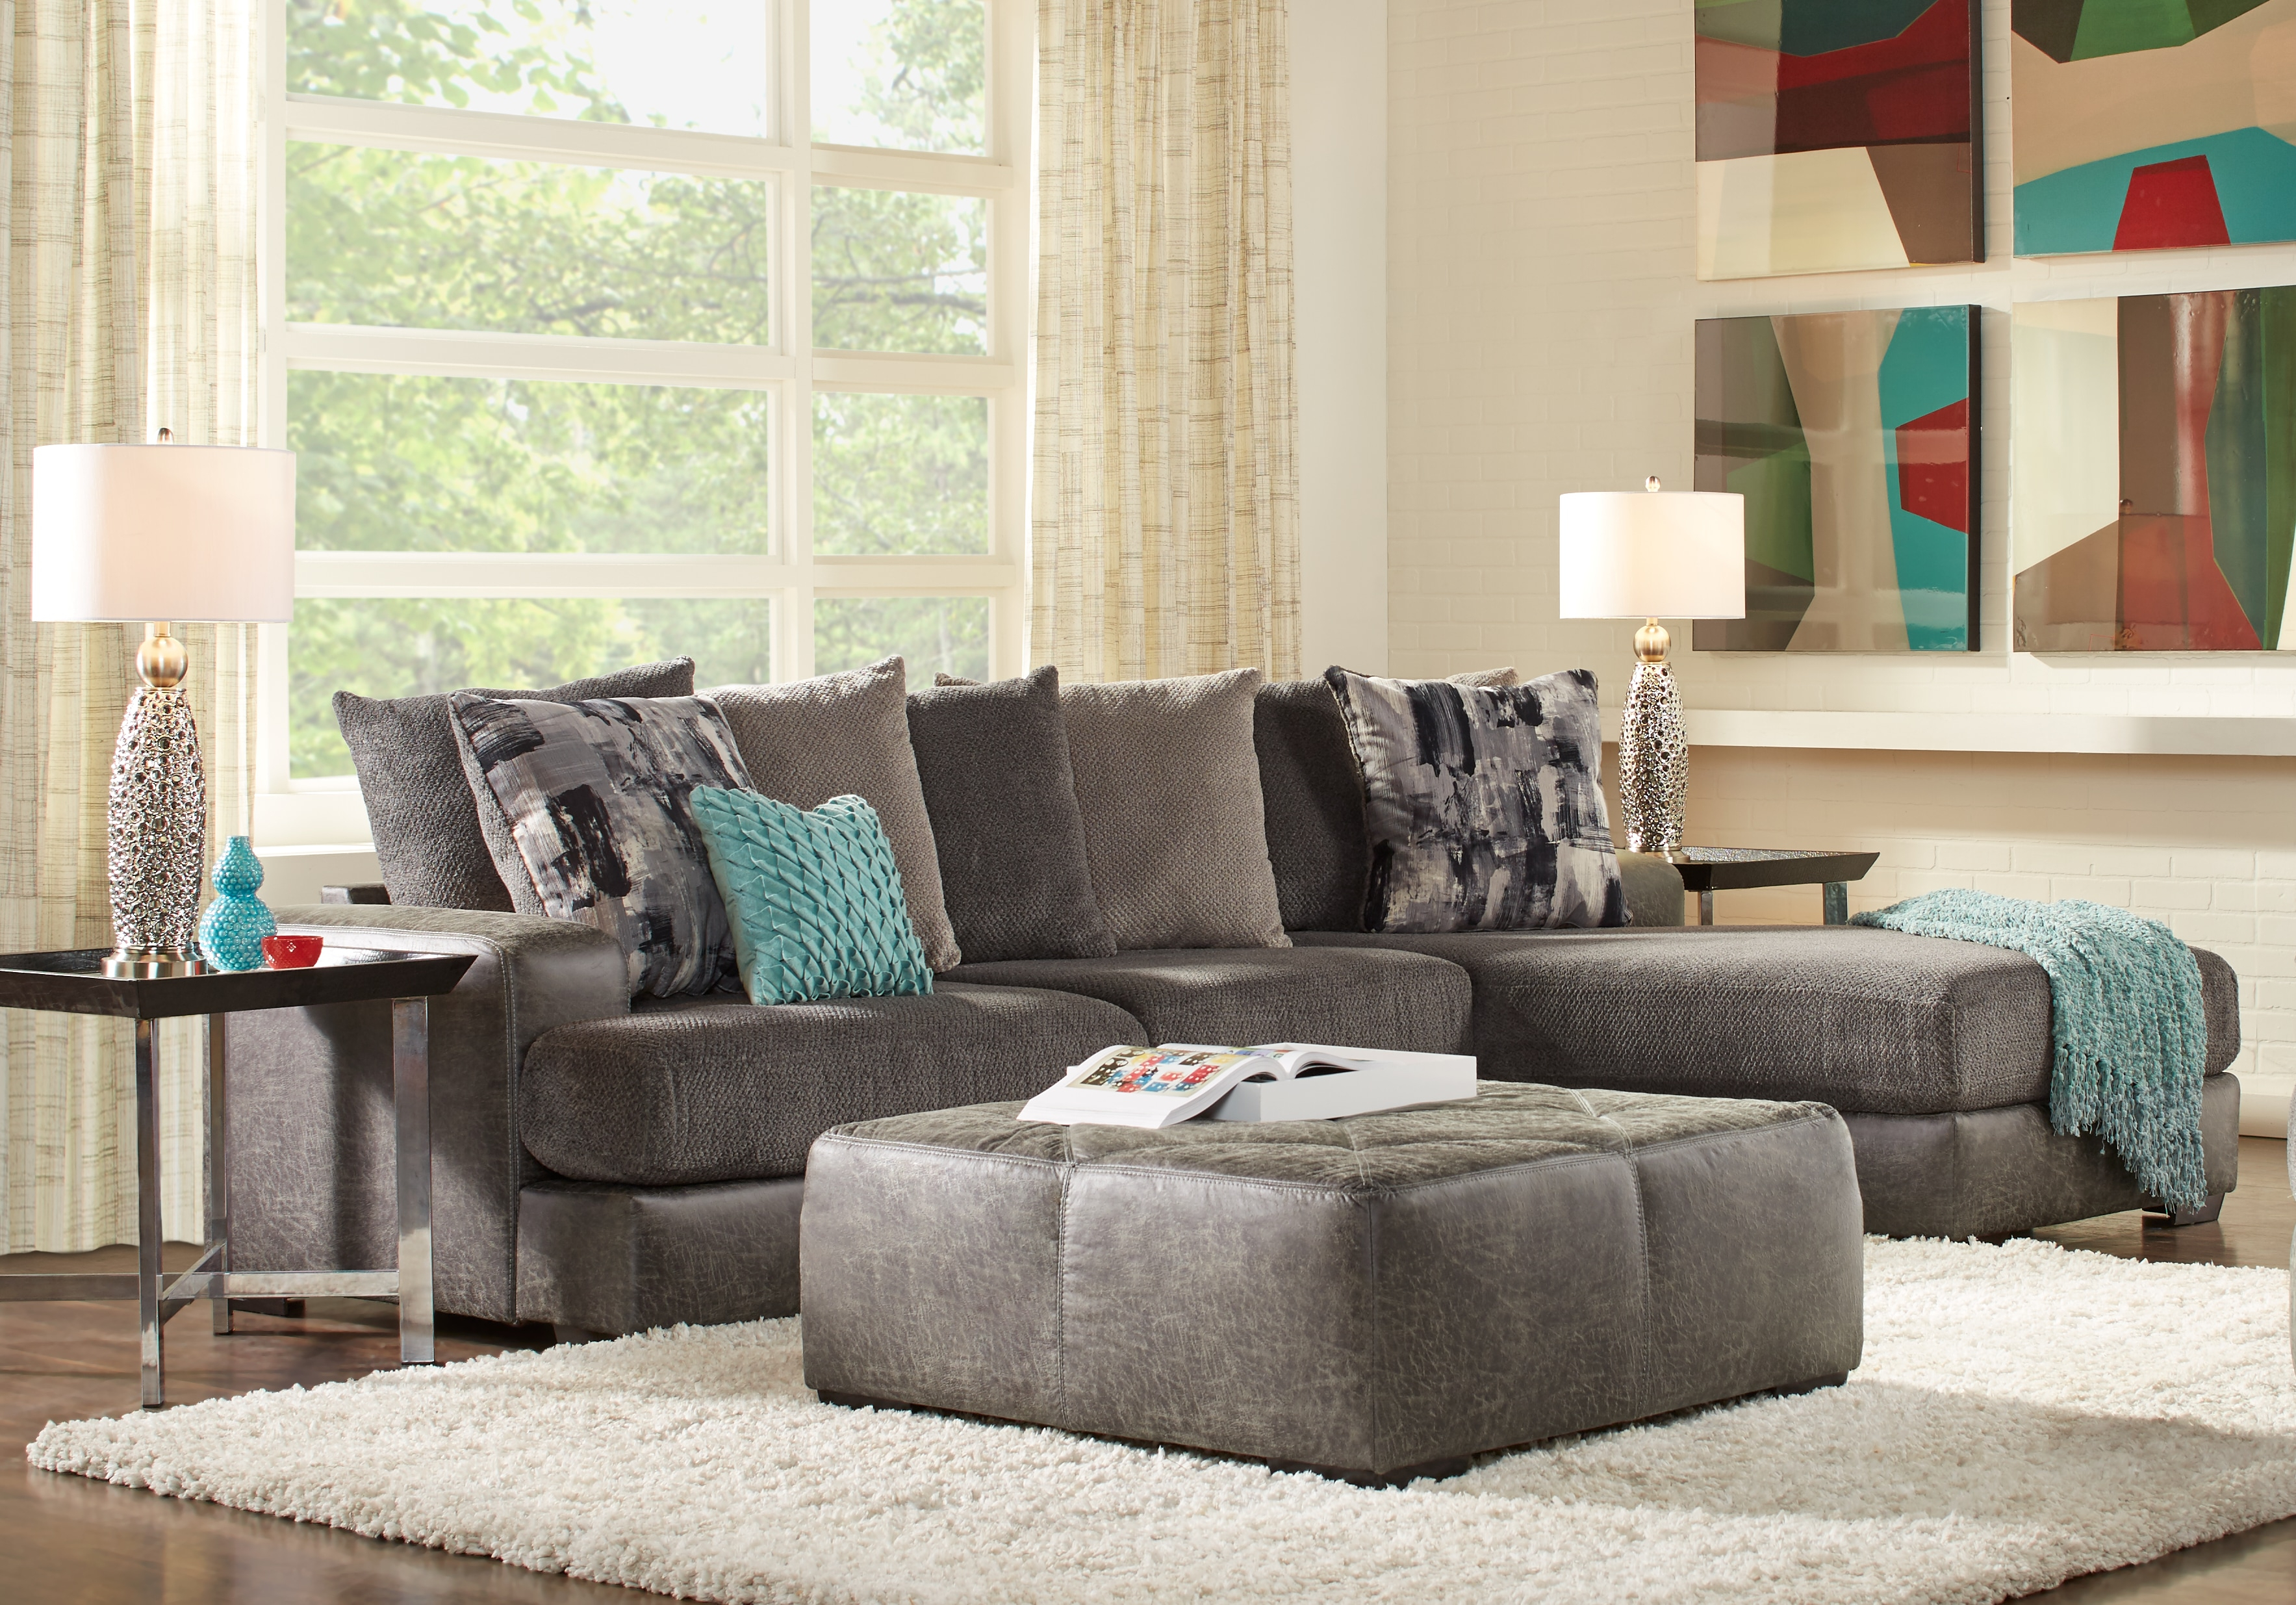 Foster Square Graphite 2 Pc Sectional – Living Room Sets (Gray) Throughout Mcdade Graphite Sofa Chairs (View 5 of 20)